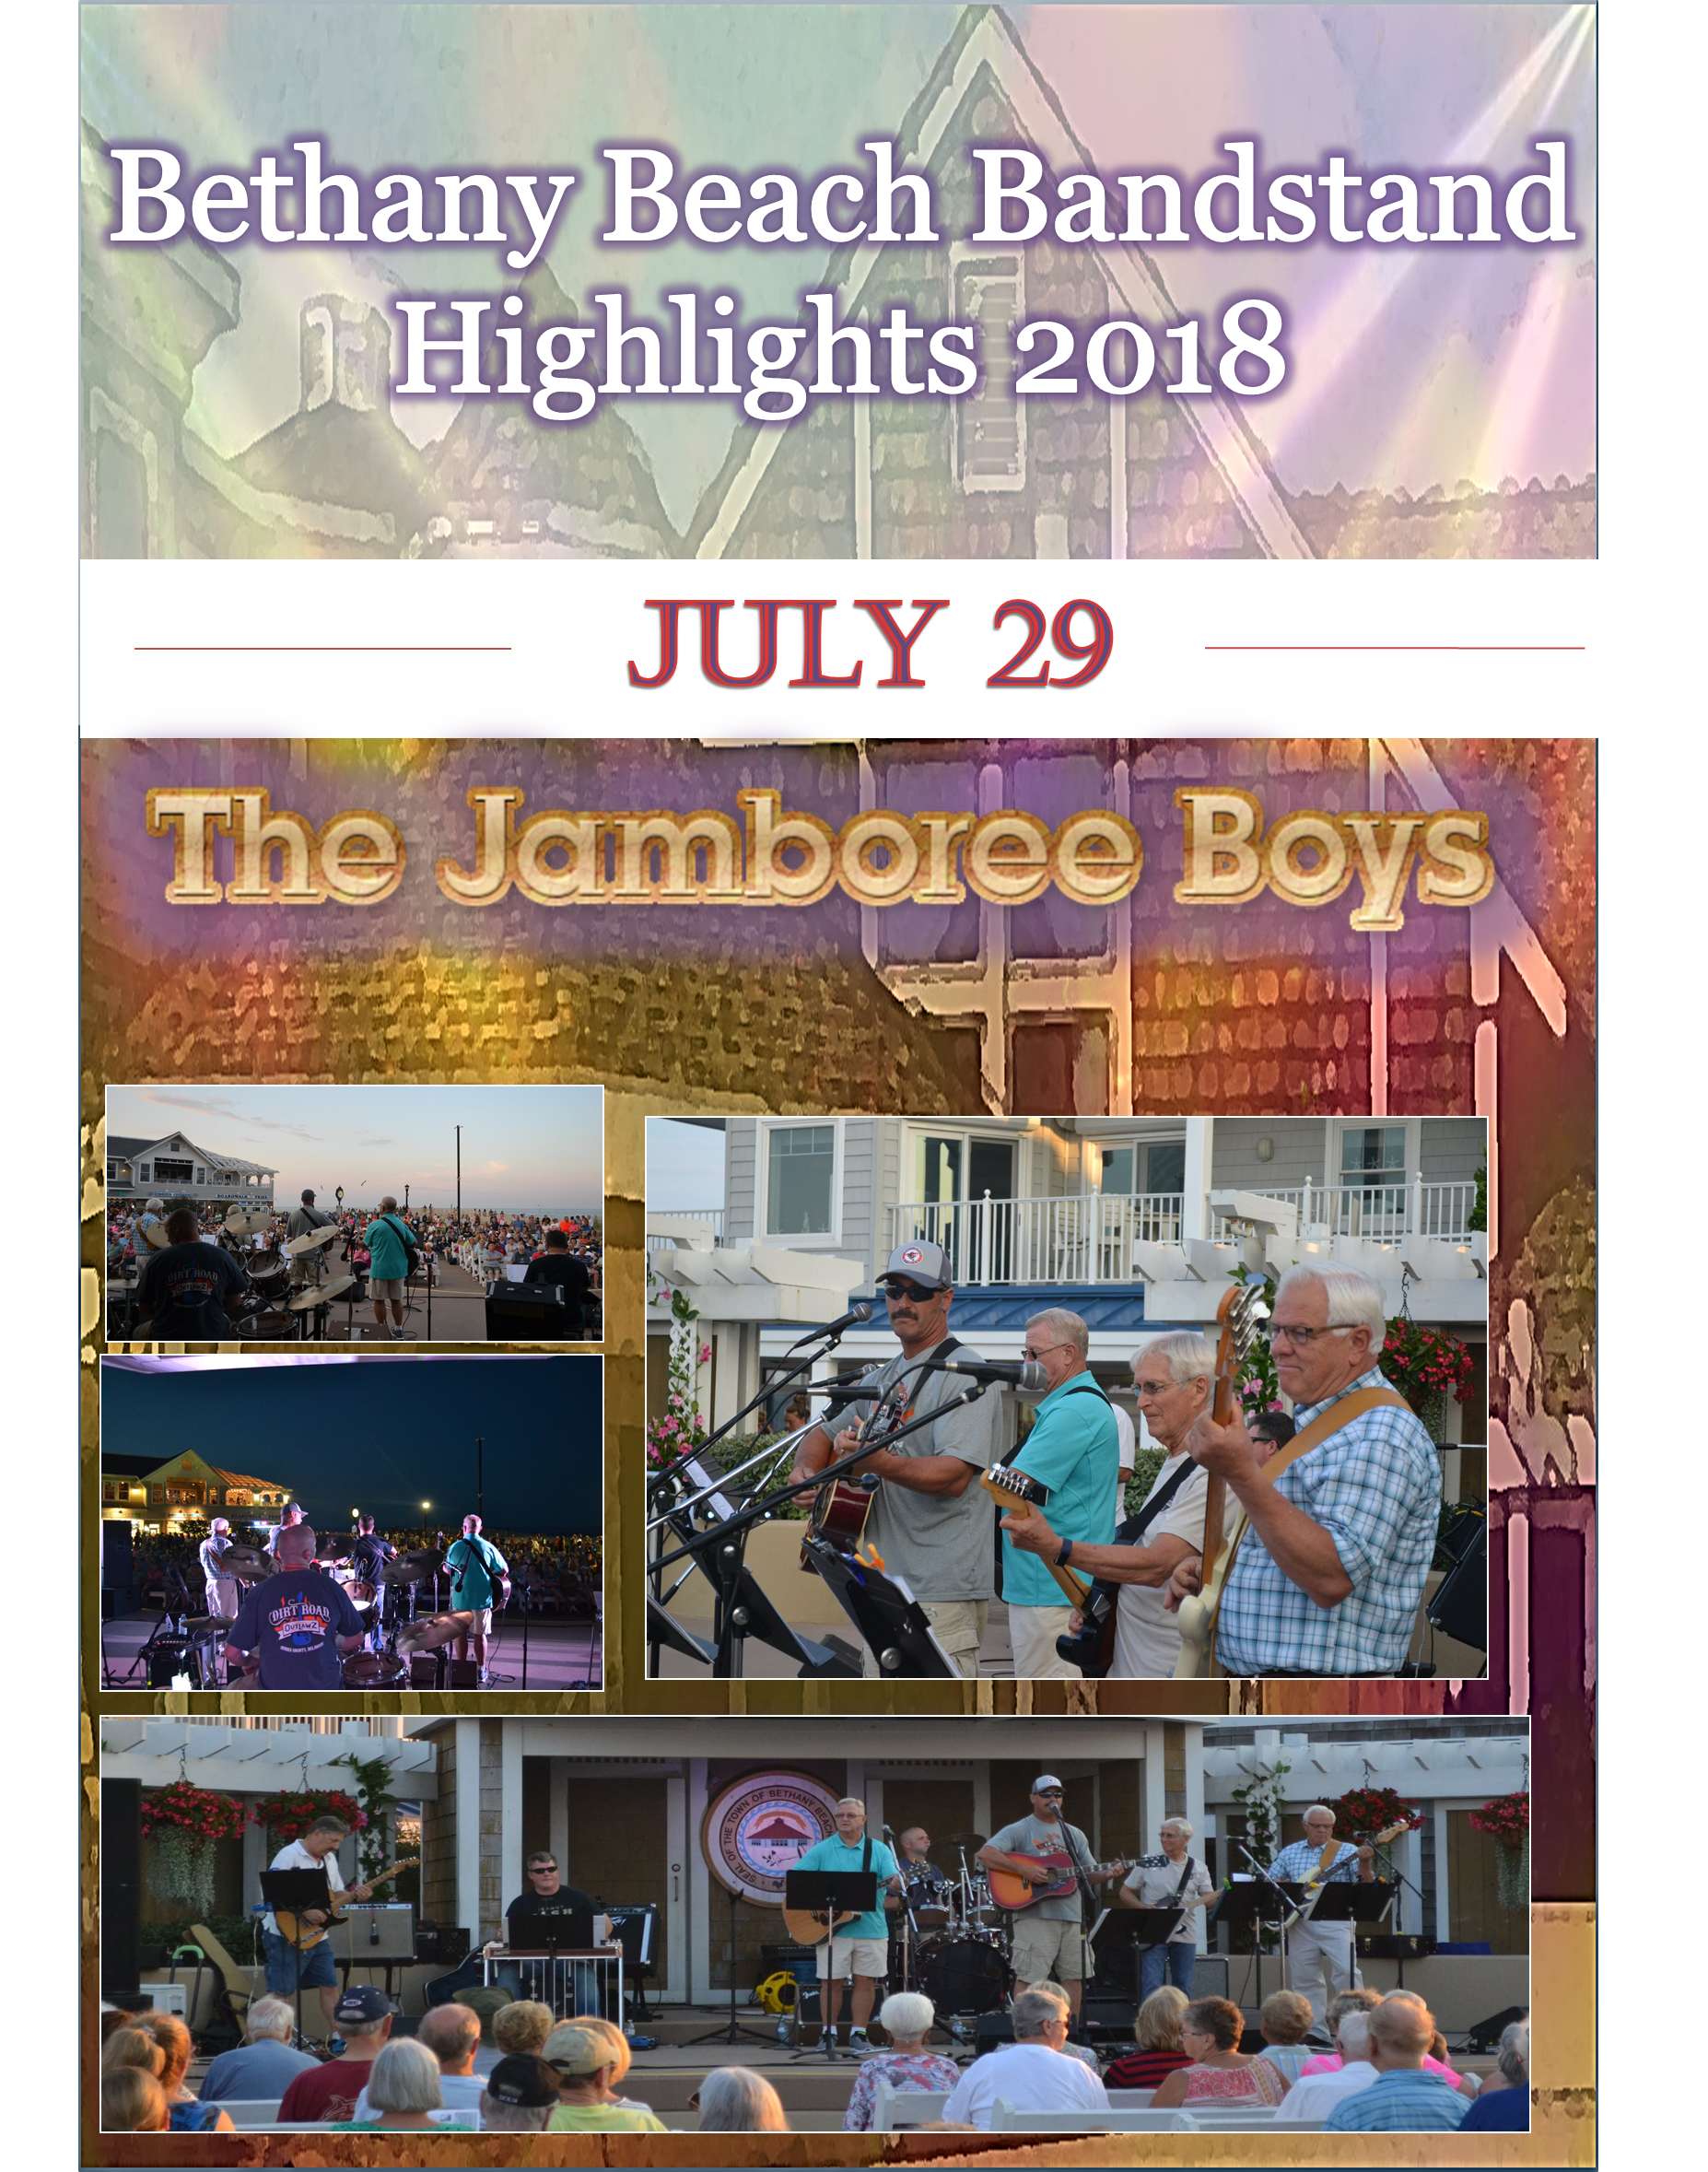 The Jamboree Boys